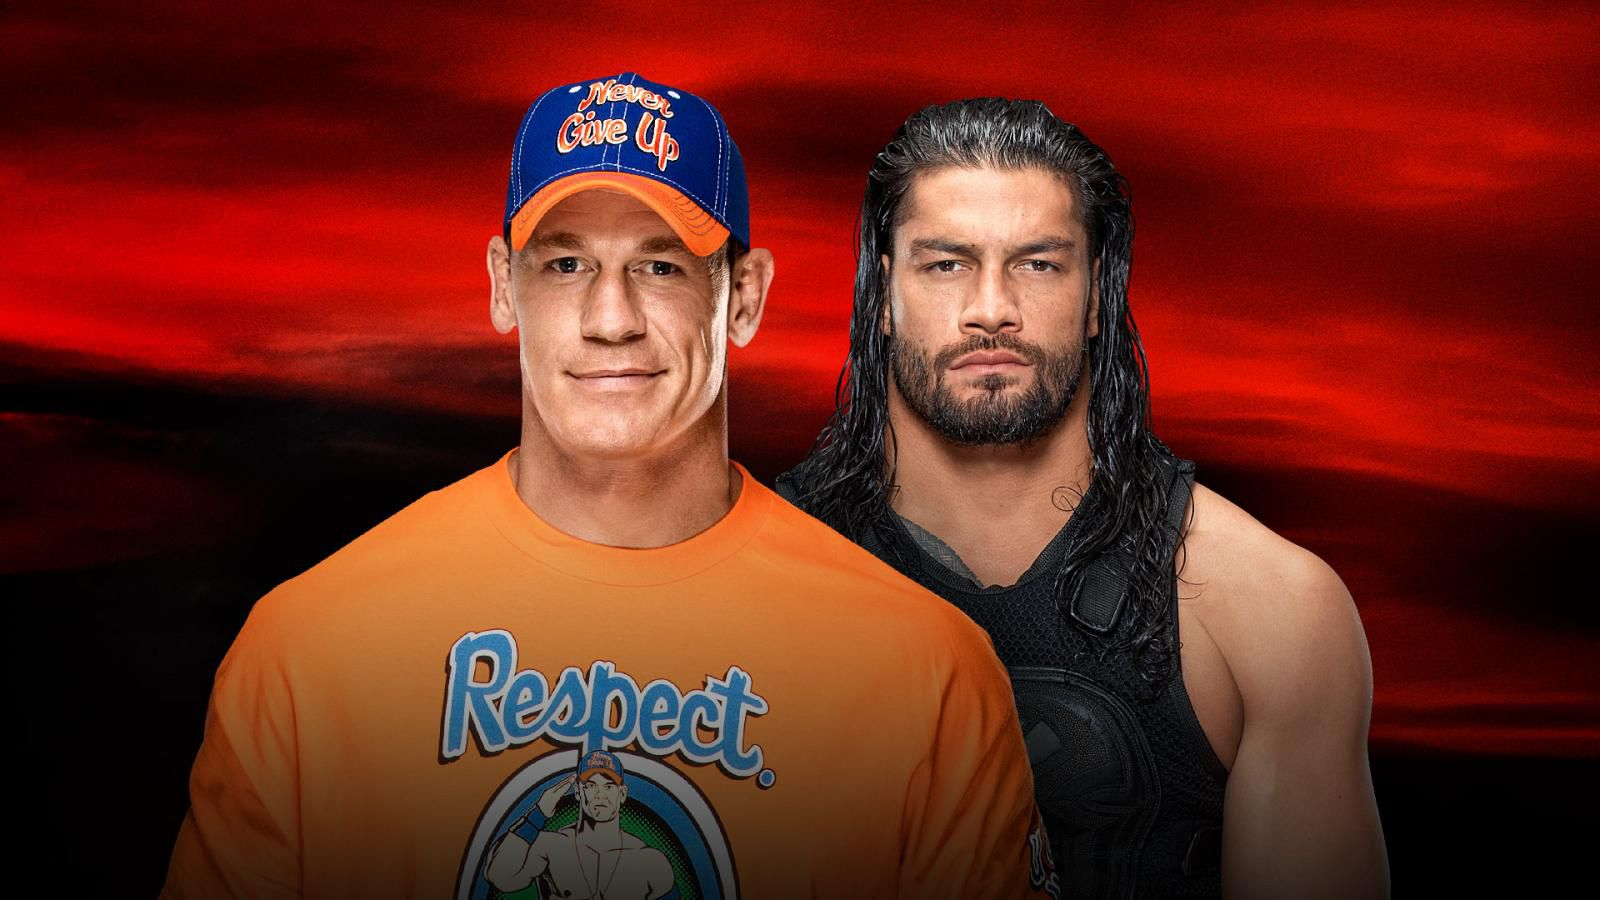 John Cena Vs Roman Reigns Match Set For Wwe No Mercy 2017